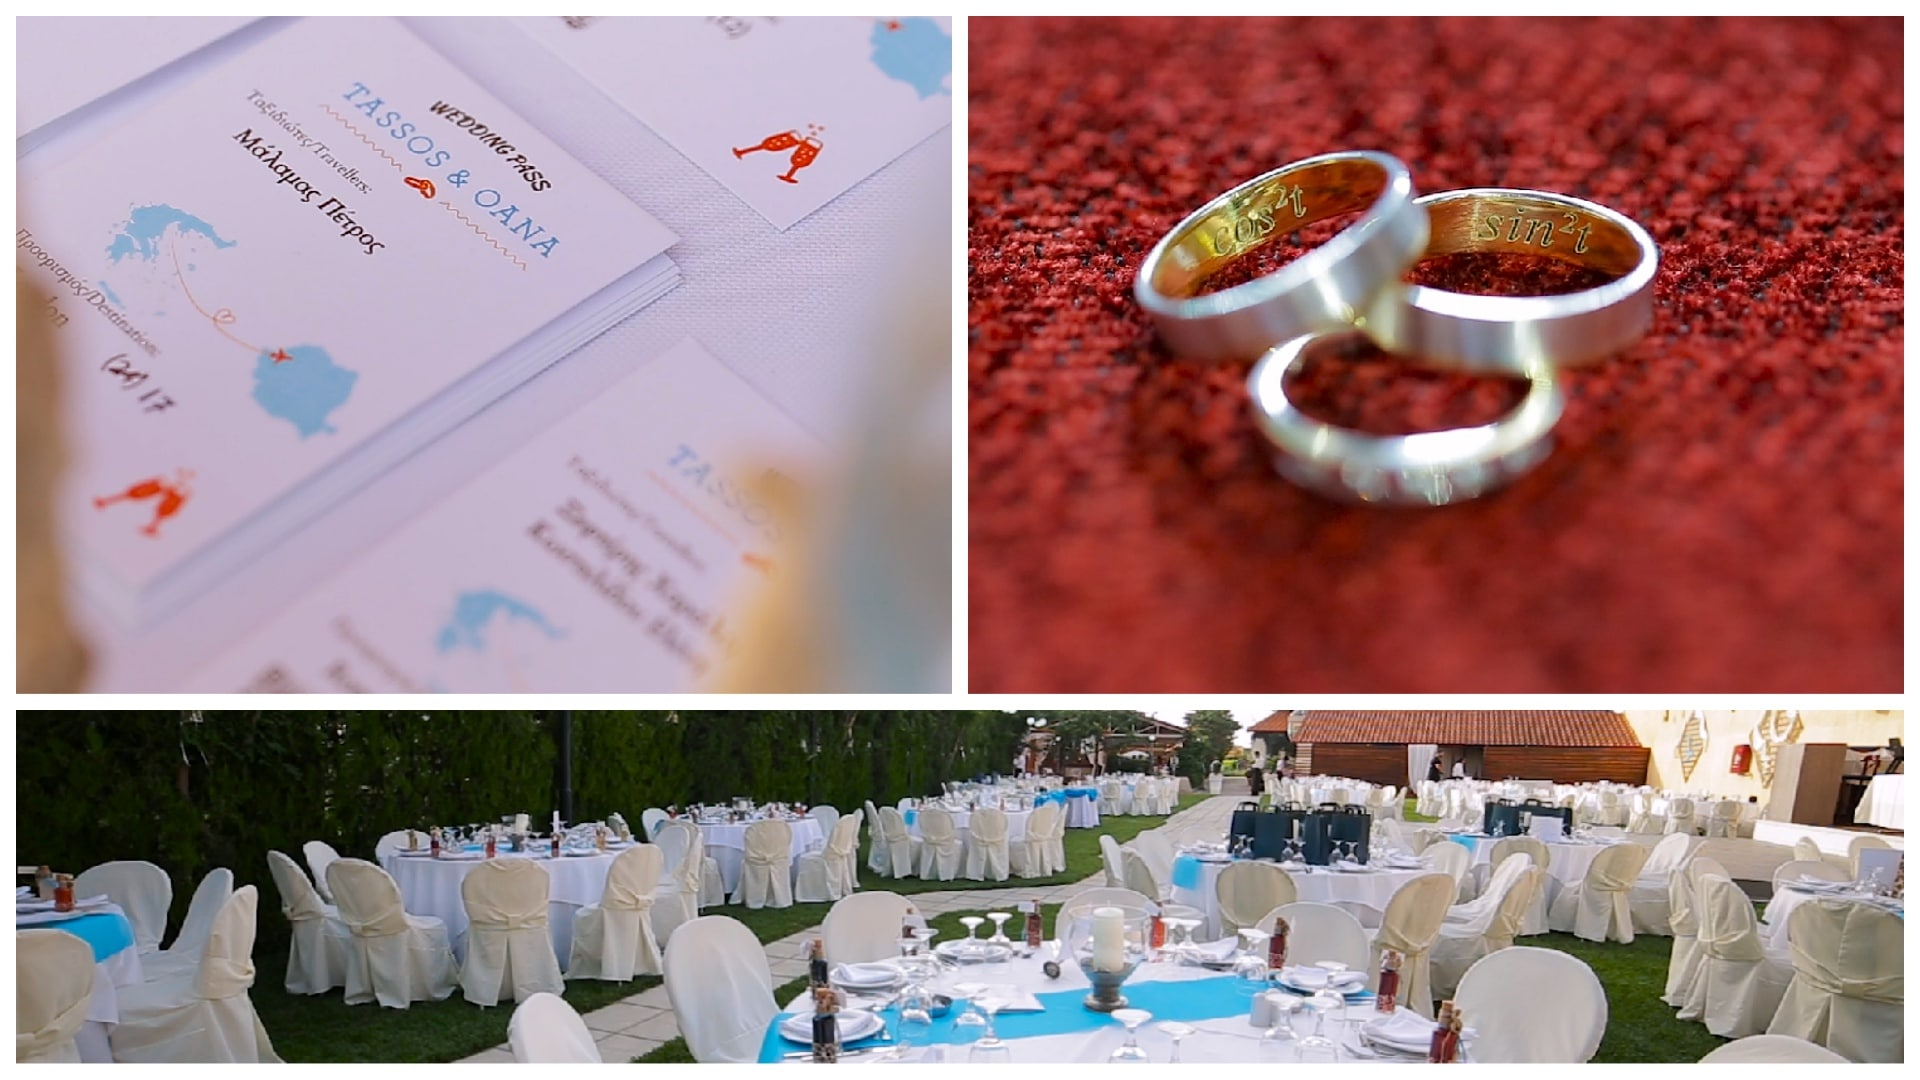 Details and outdoor venue at Greek wedding